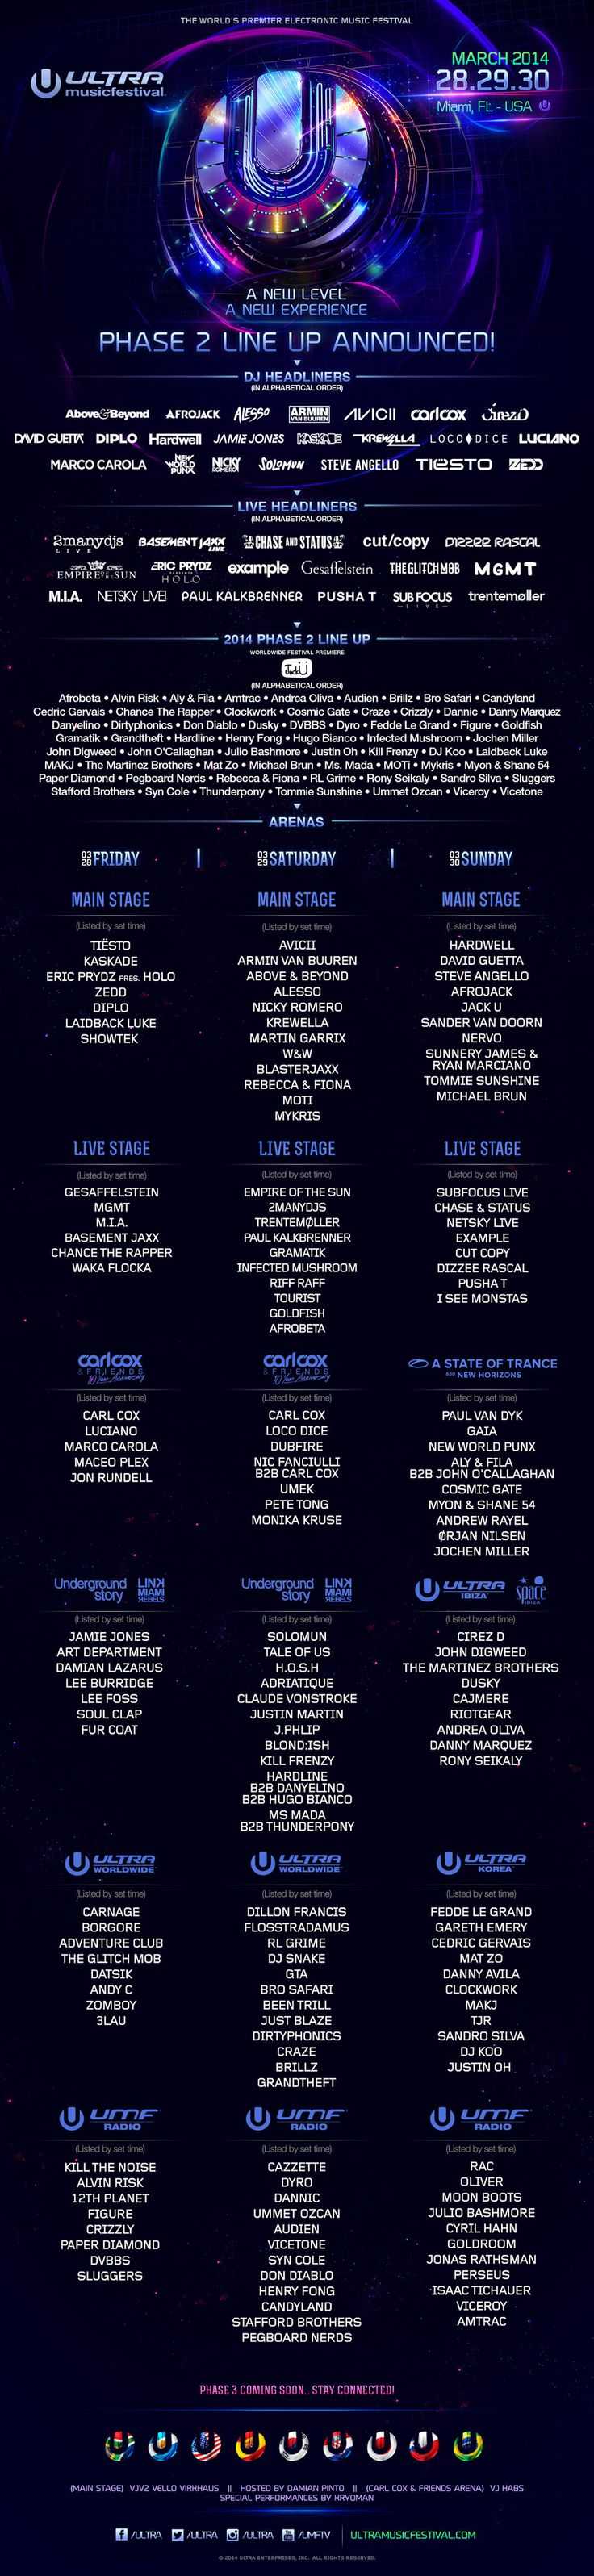 Ultra 2014 Lineup Phase 2!